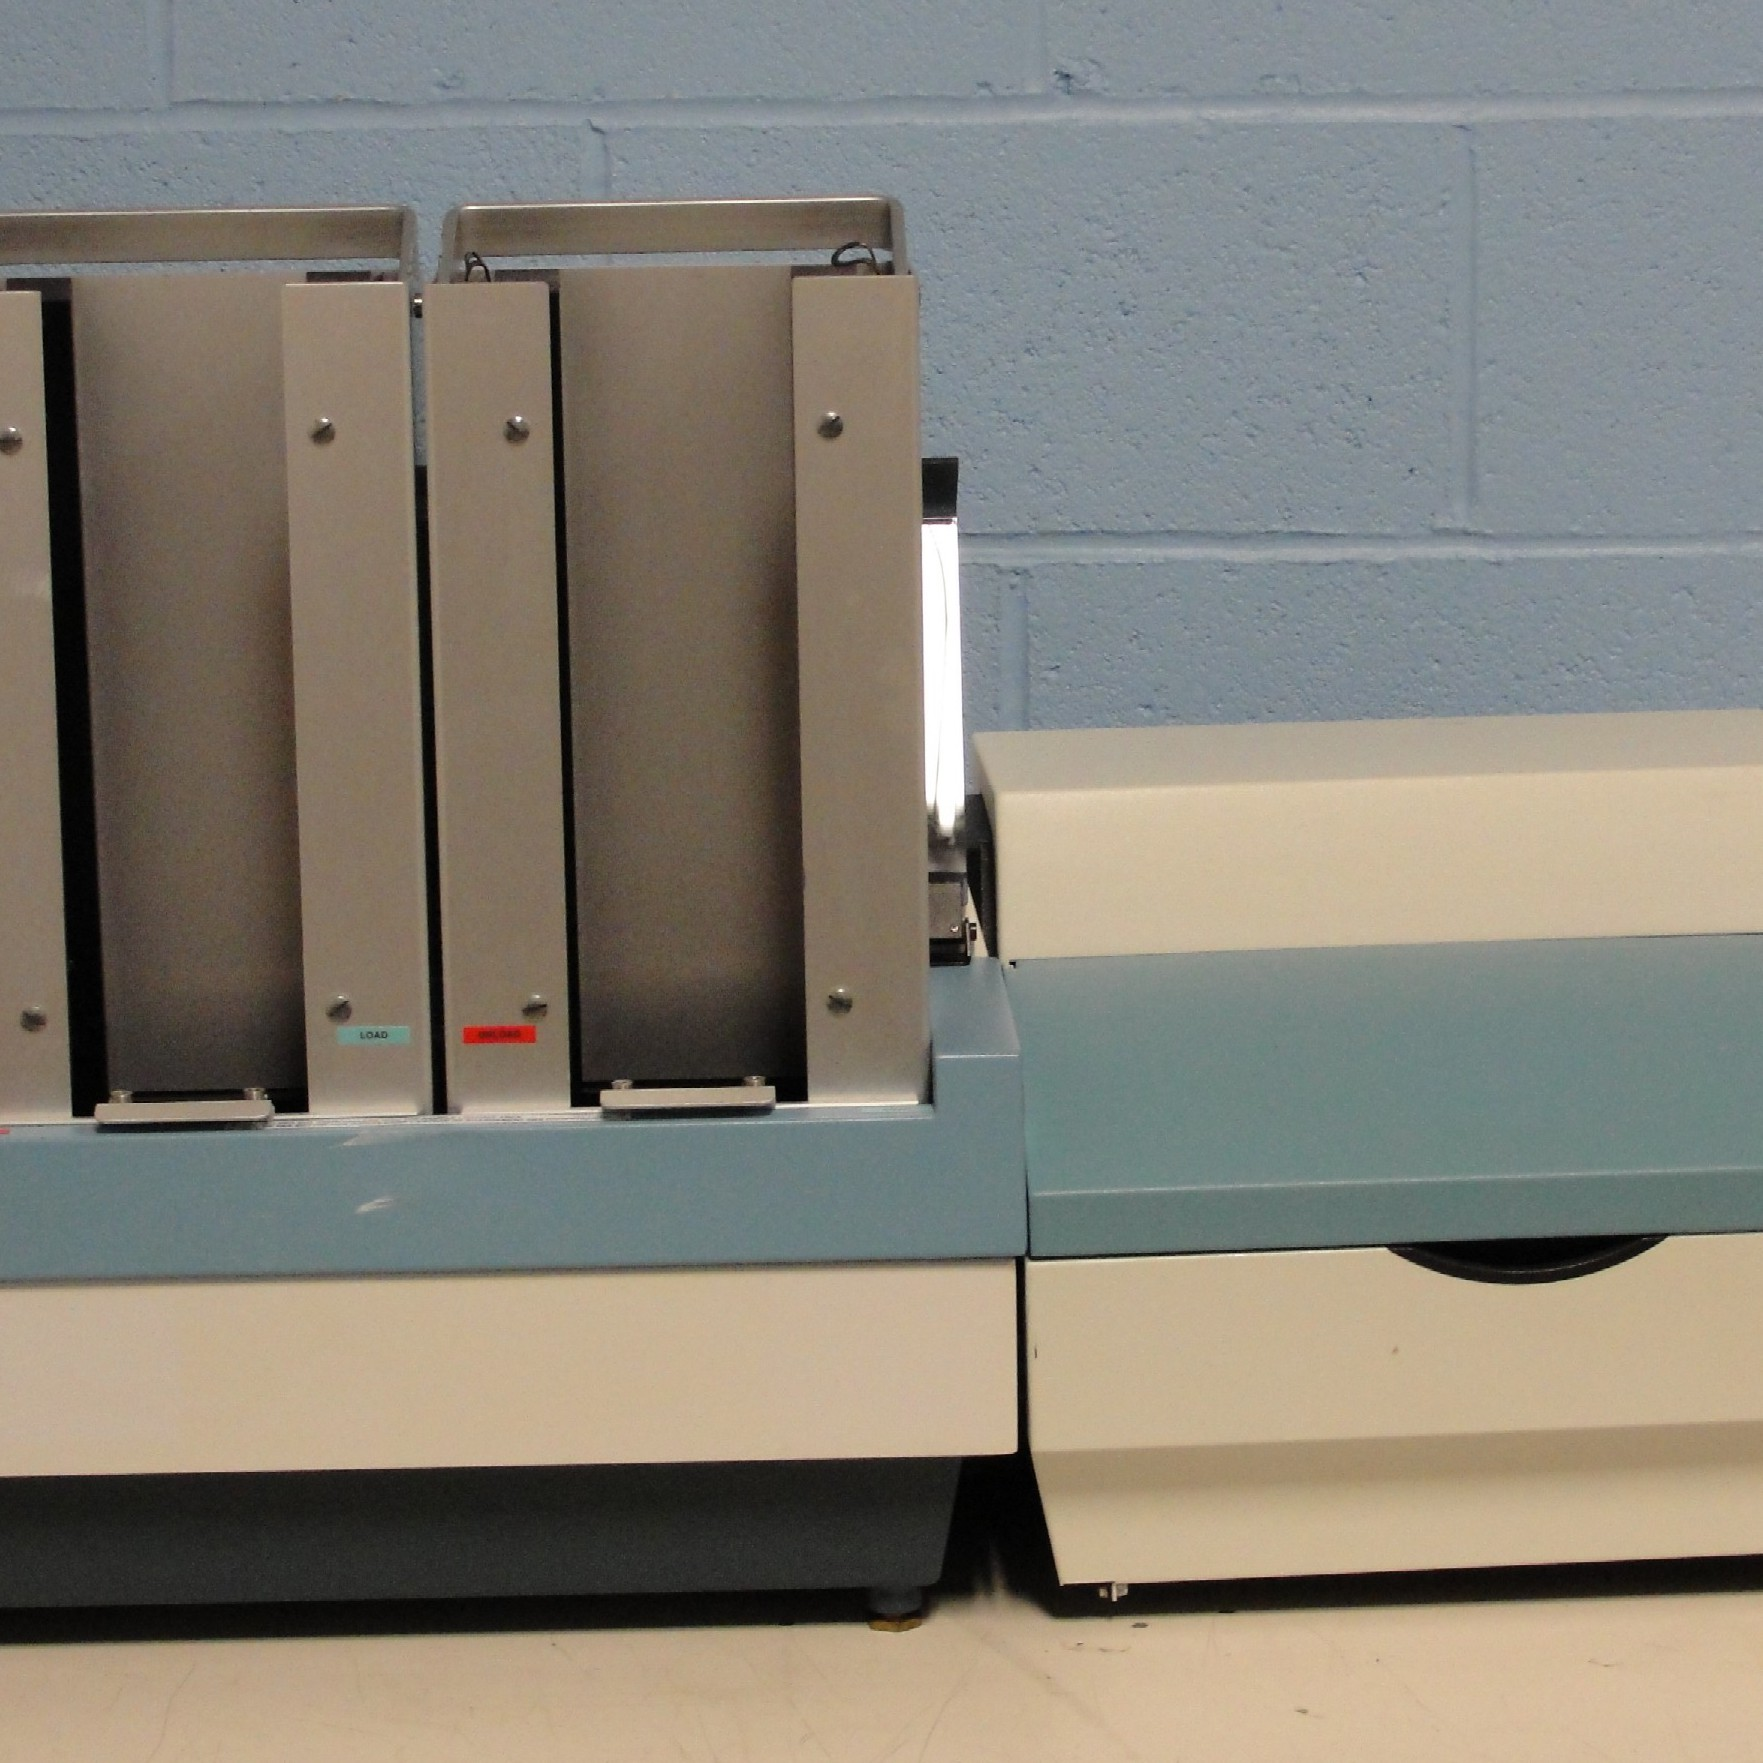 Perkin Elmer Victor2 V 1420-041 Multilabel HTS Counter comes with Liquid Injector Model 1420-041 Image